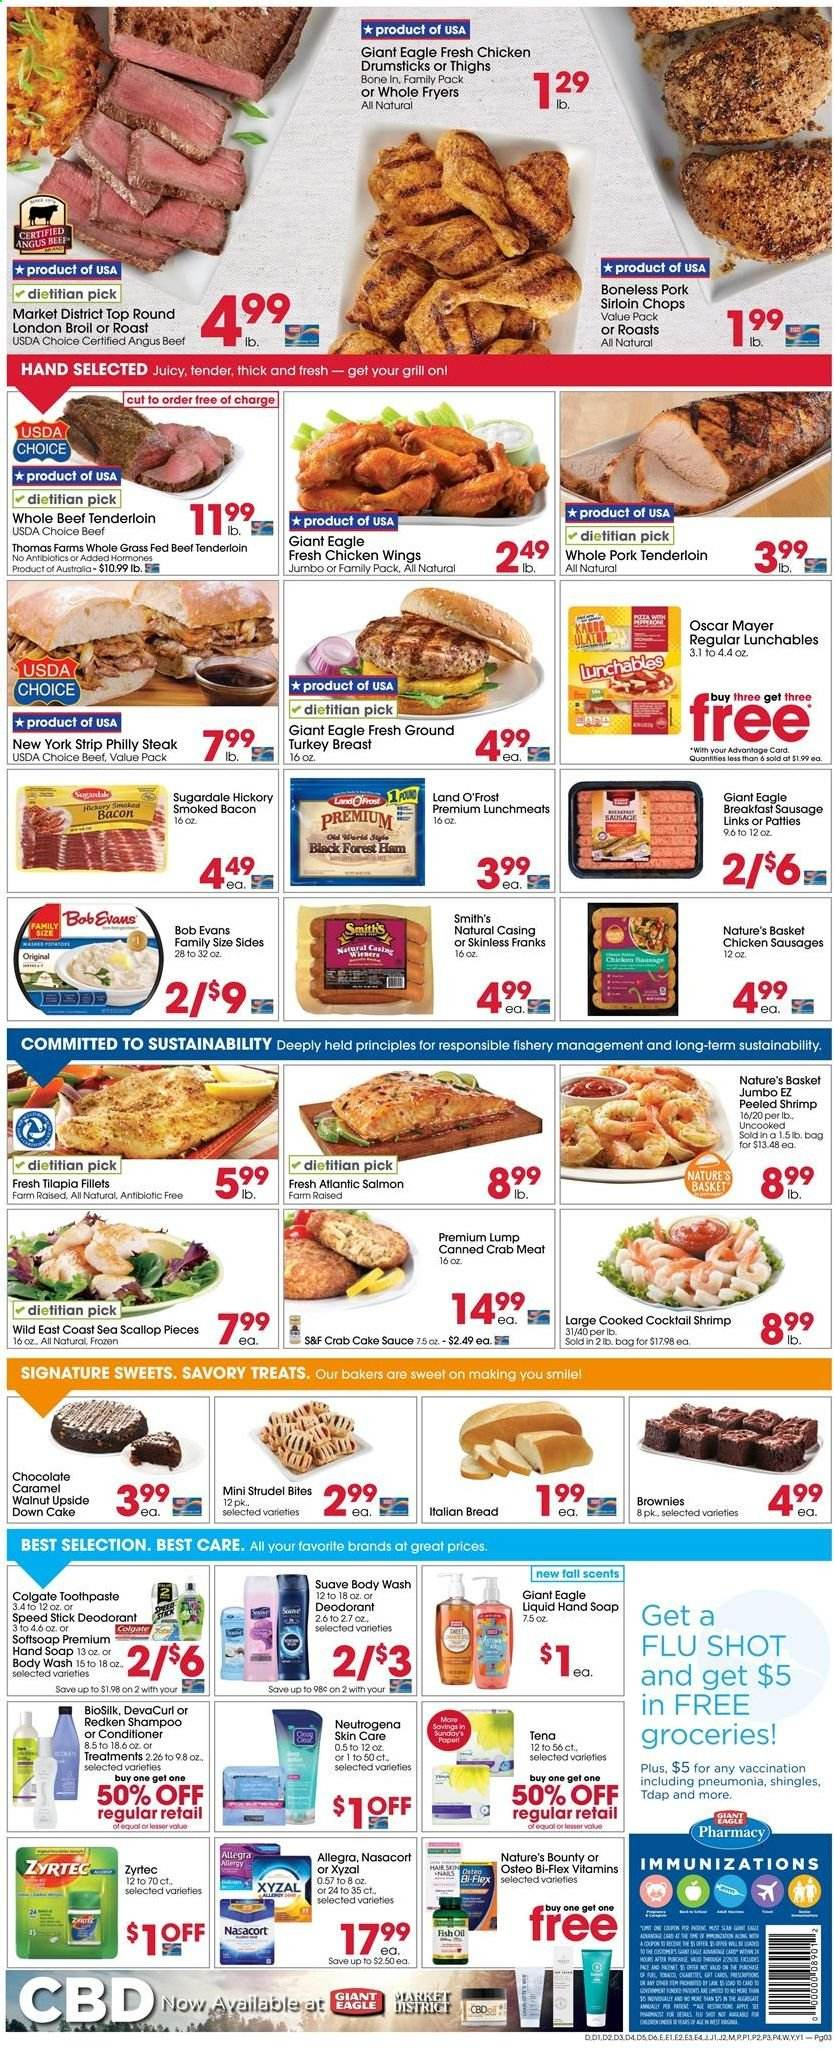 Giant Eagle Flyer  - 09.12.2019 - 09.18.2019. Page 3.